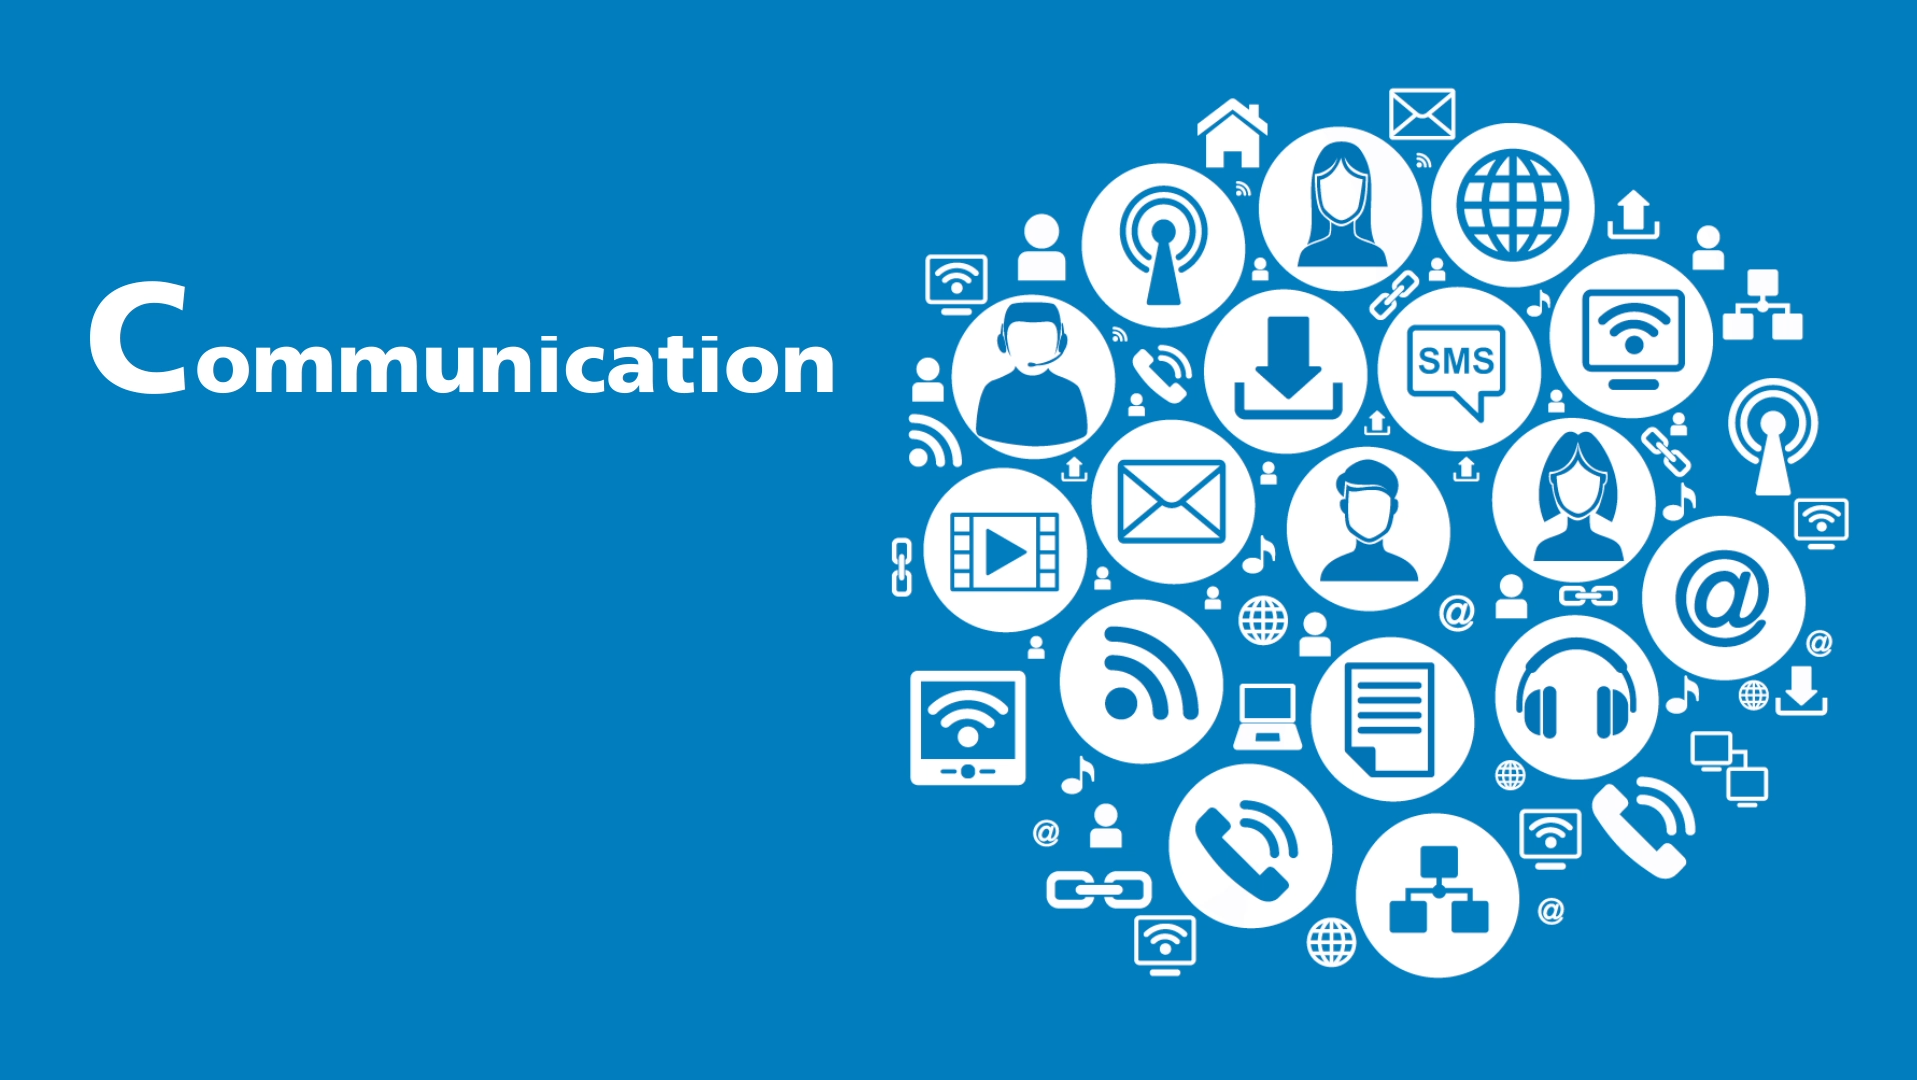 This is the image for the news article titled Communication